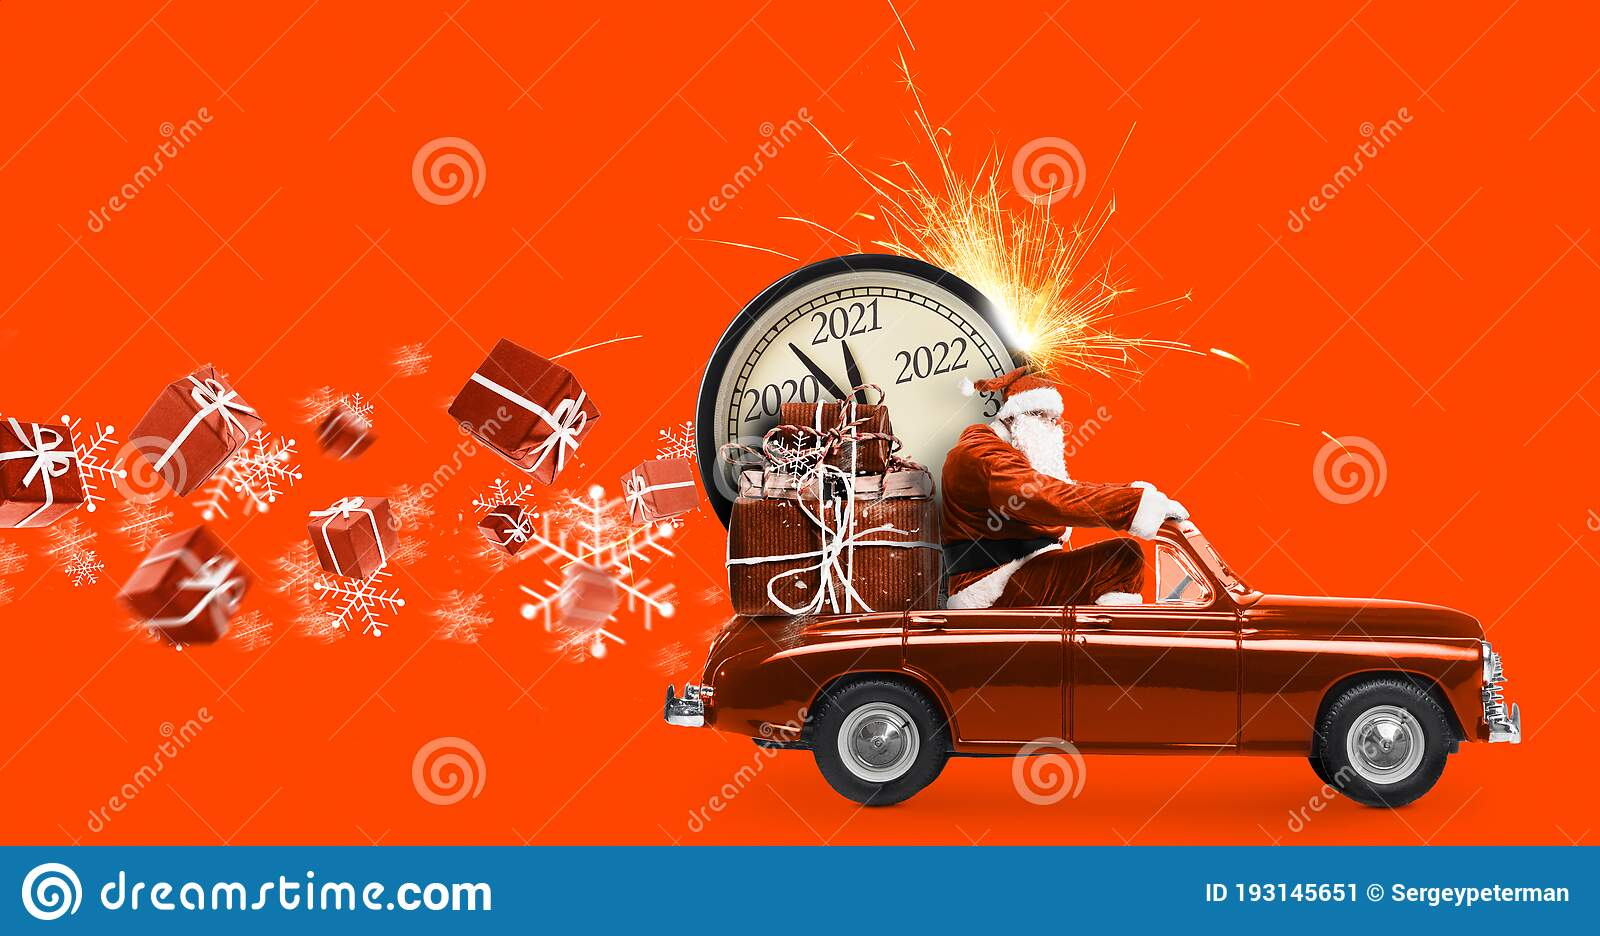 Orange Va Delivering Christmas Gift 2020 Santa Claus Countdown On Car Stock Image   Image of countdown